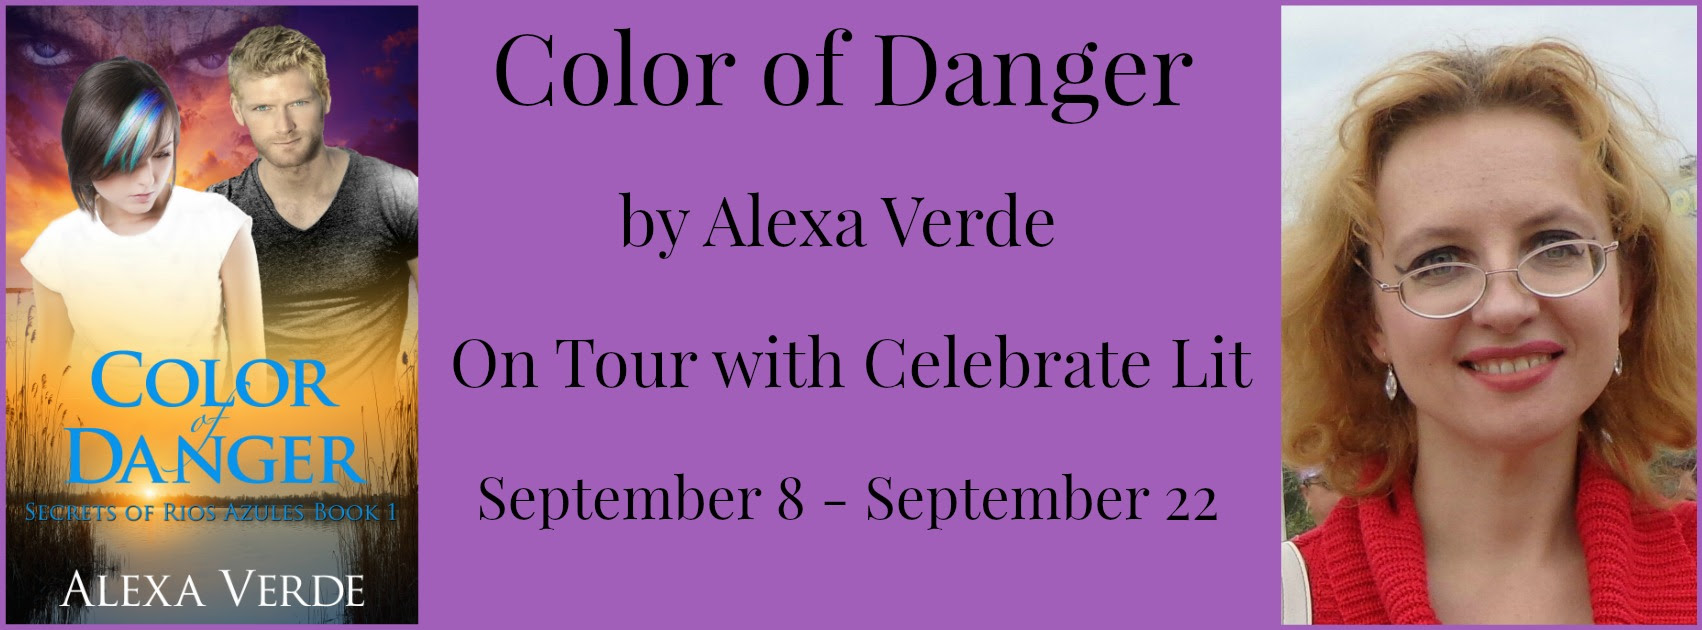 Color of Danger Banner (2)